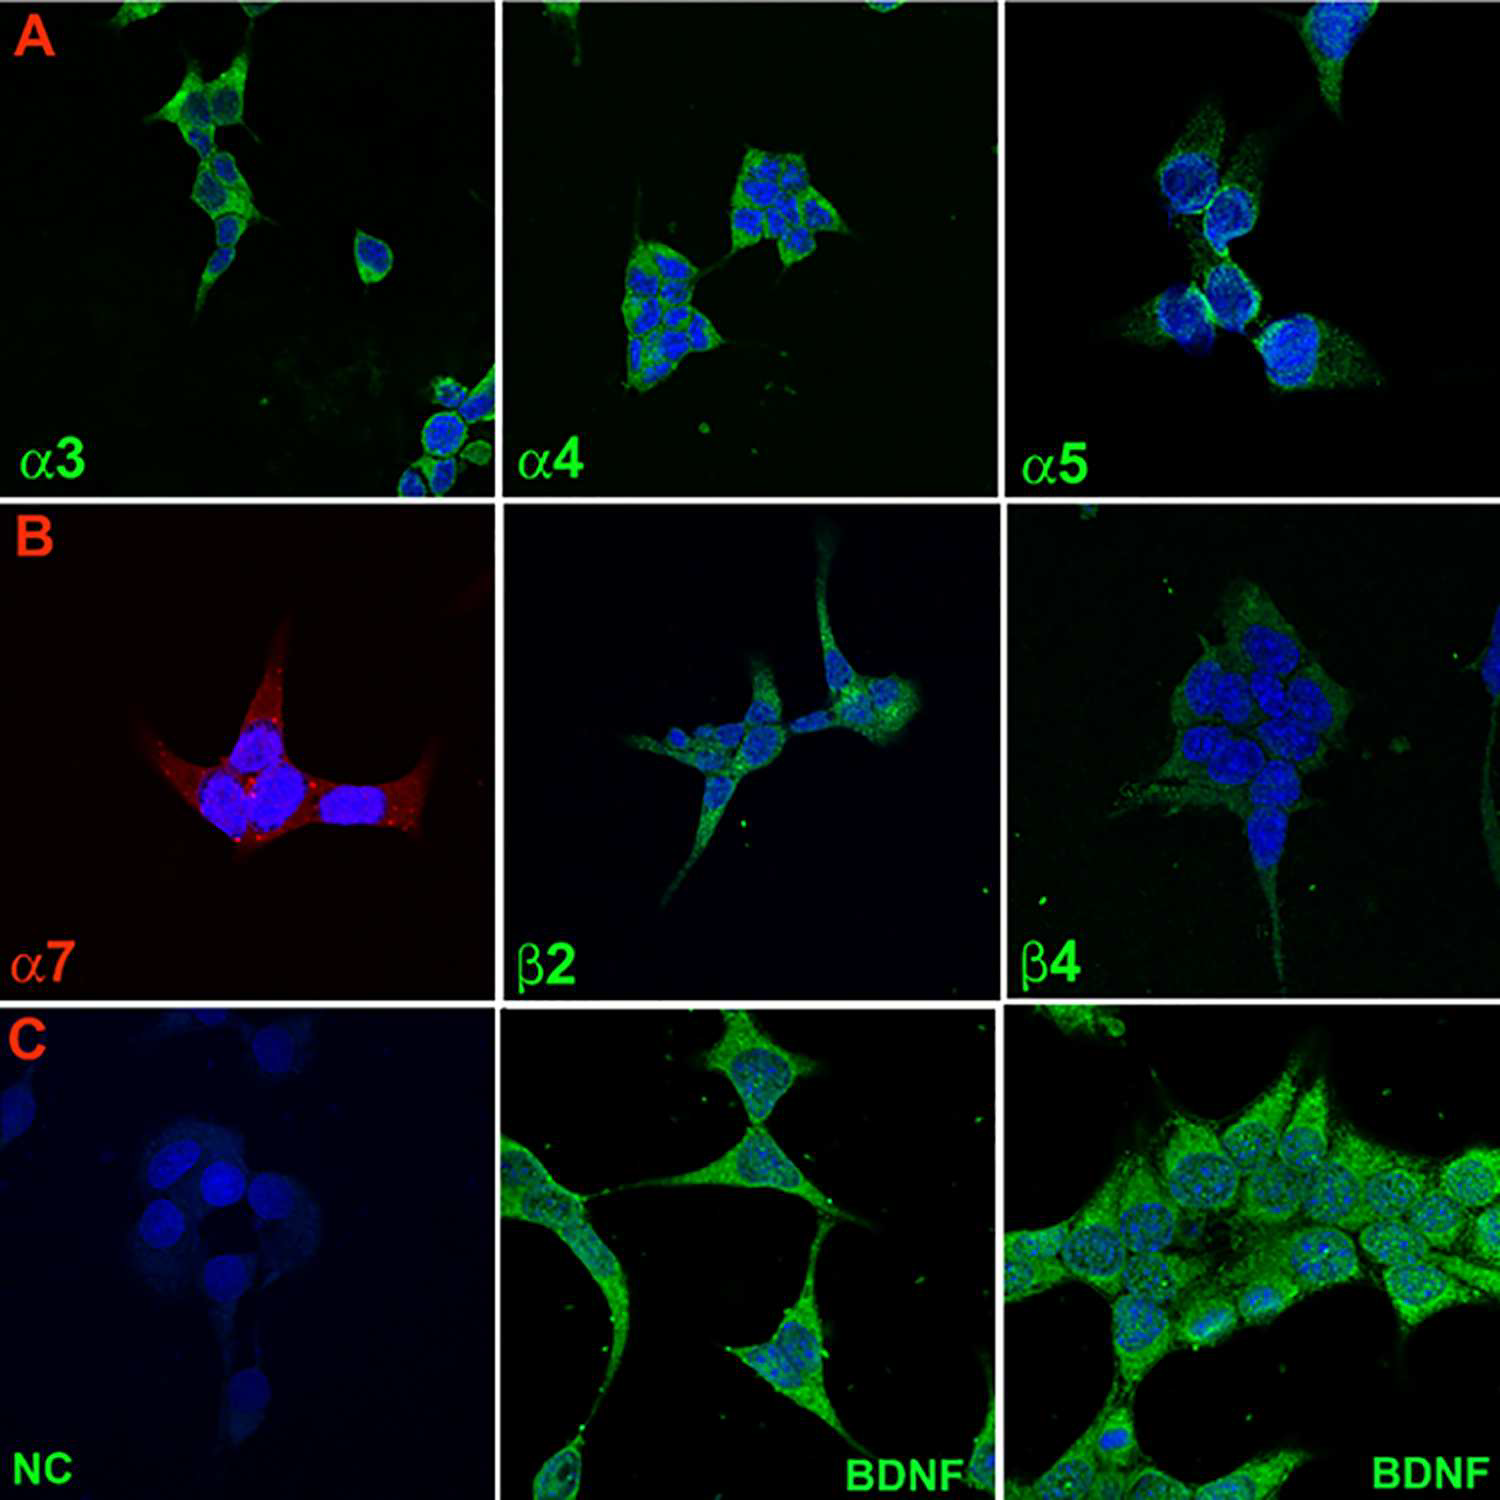 Immunofluorescence staining of nAChR subunits and BDNF in STC-1 cells. (Qian J, et al., 2016)